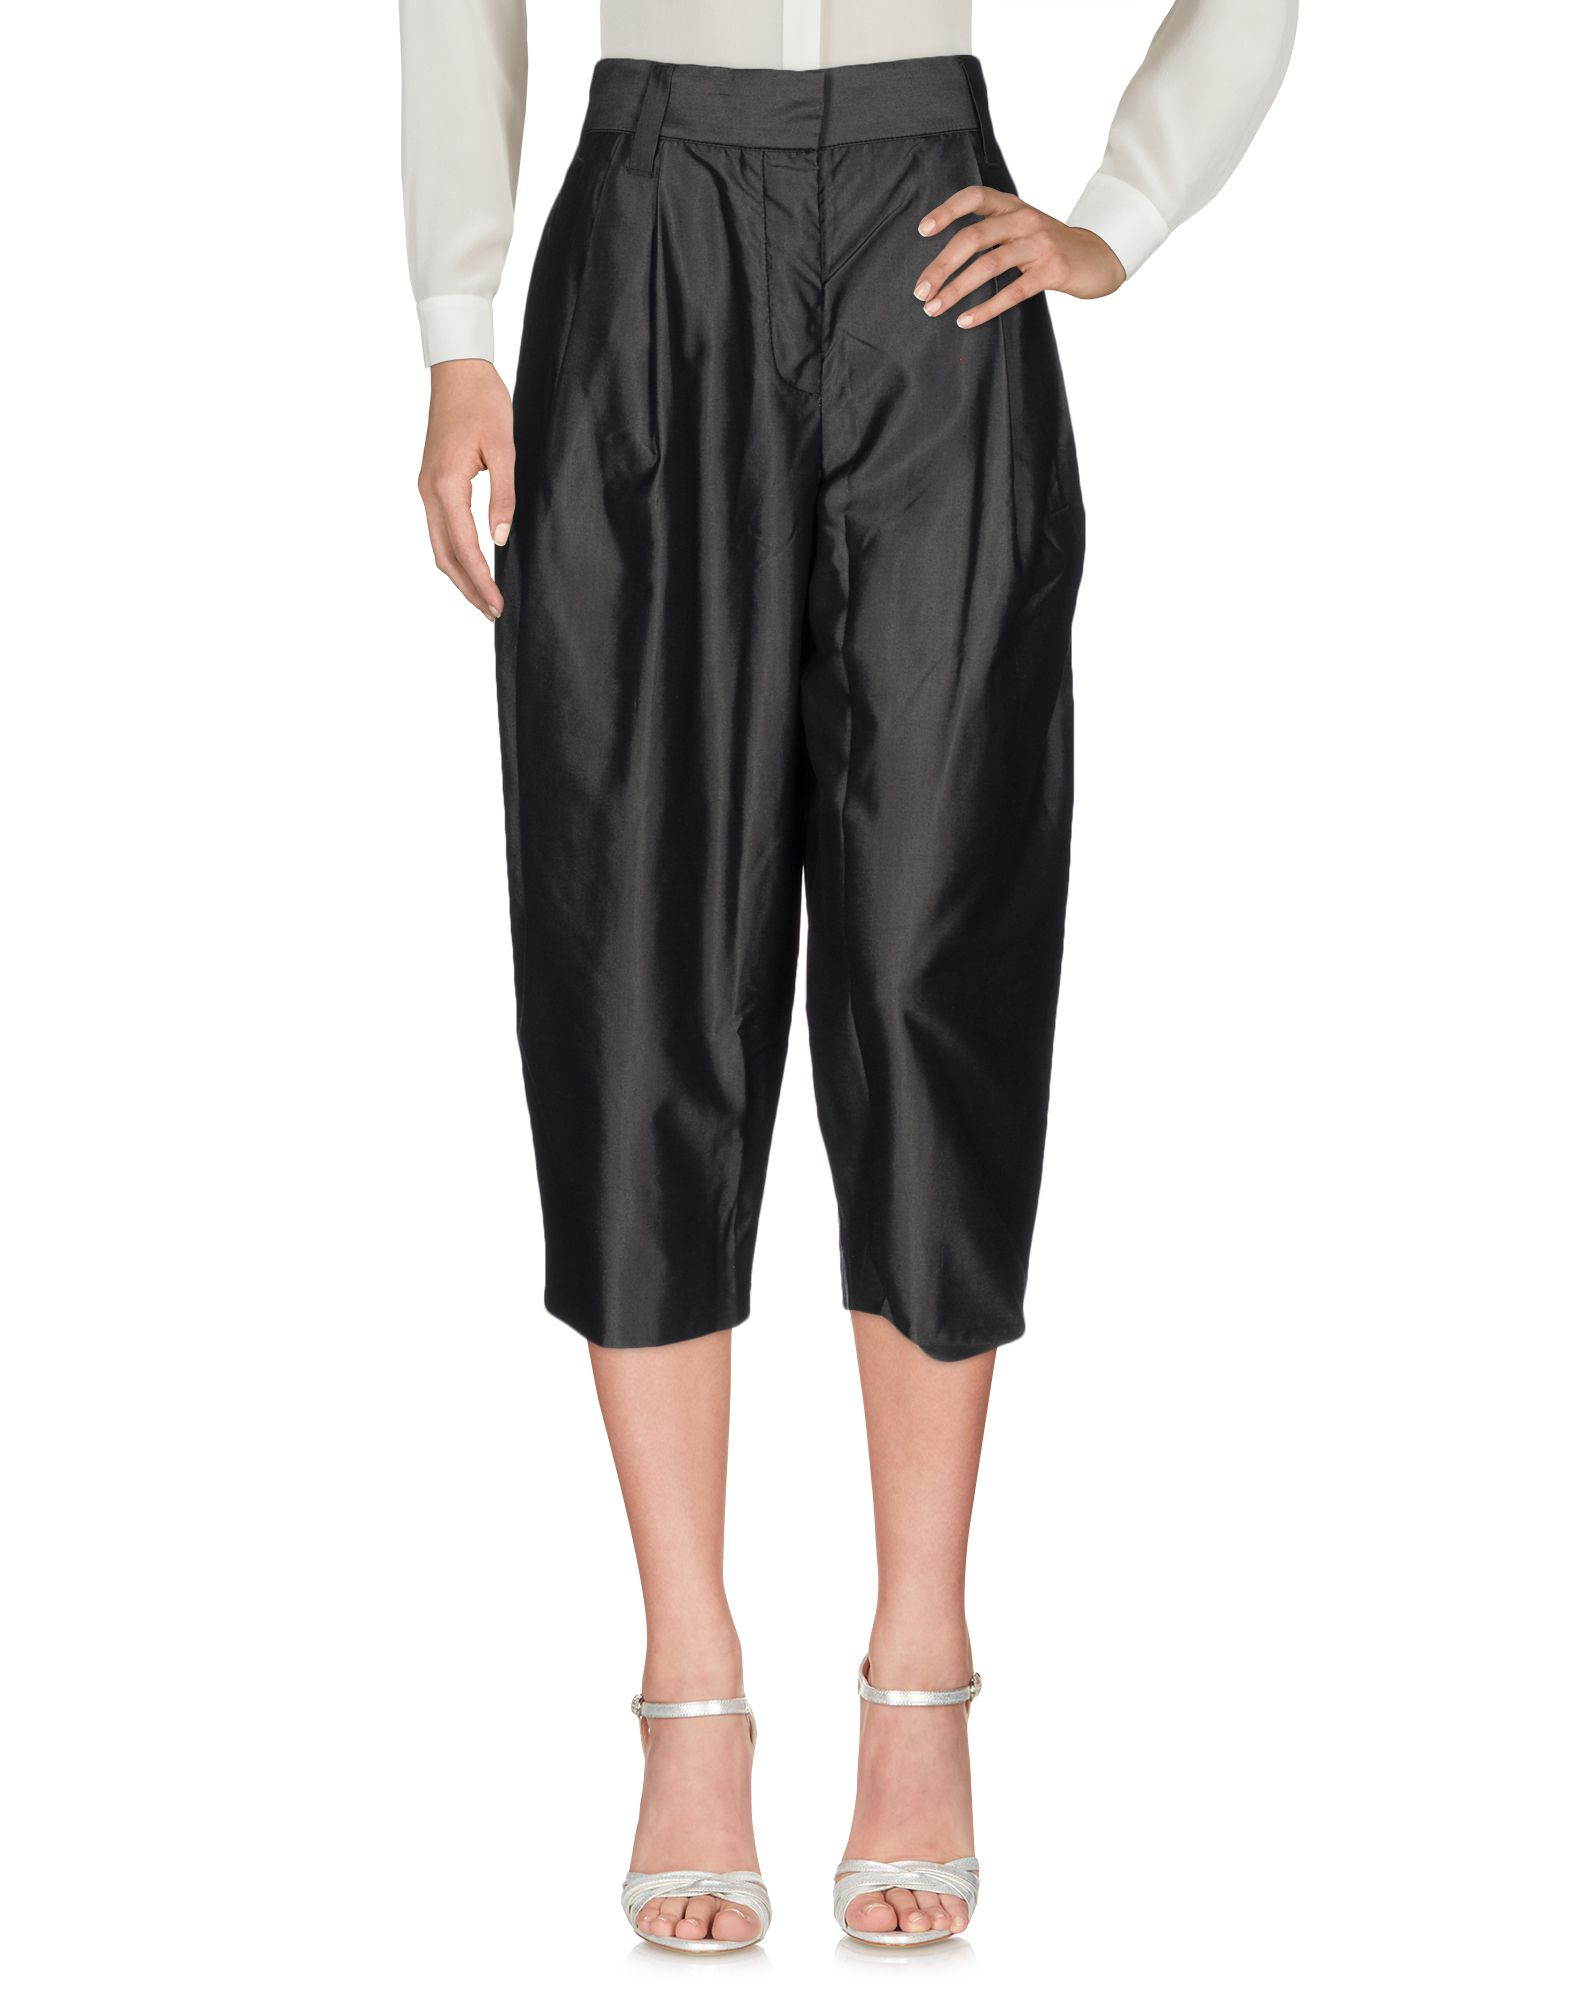 Pantalone Dritto Marc Jacobs Donna - Acquista online su qlFmNS2K1o